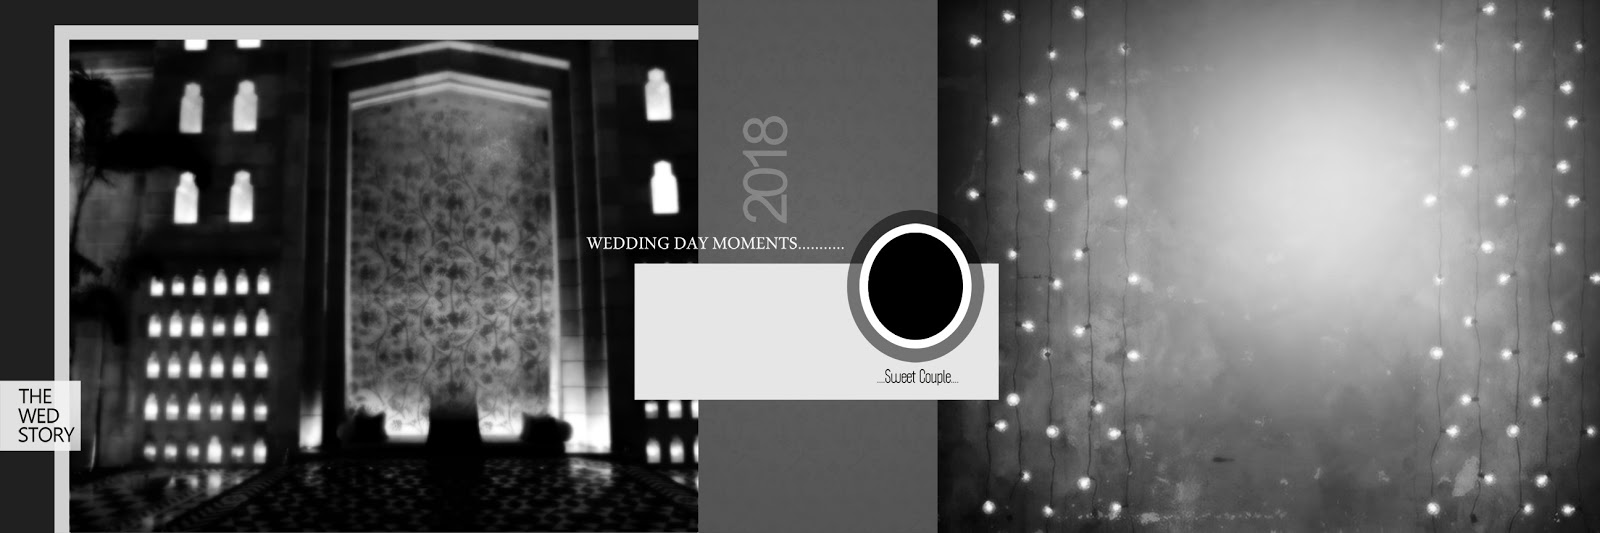 PSD WEDDING PHOTO ALBUM DESIGN TEMPLATES: 2018 Photoshop background ...